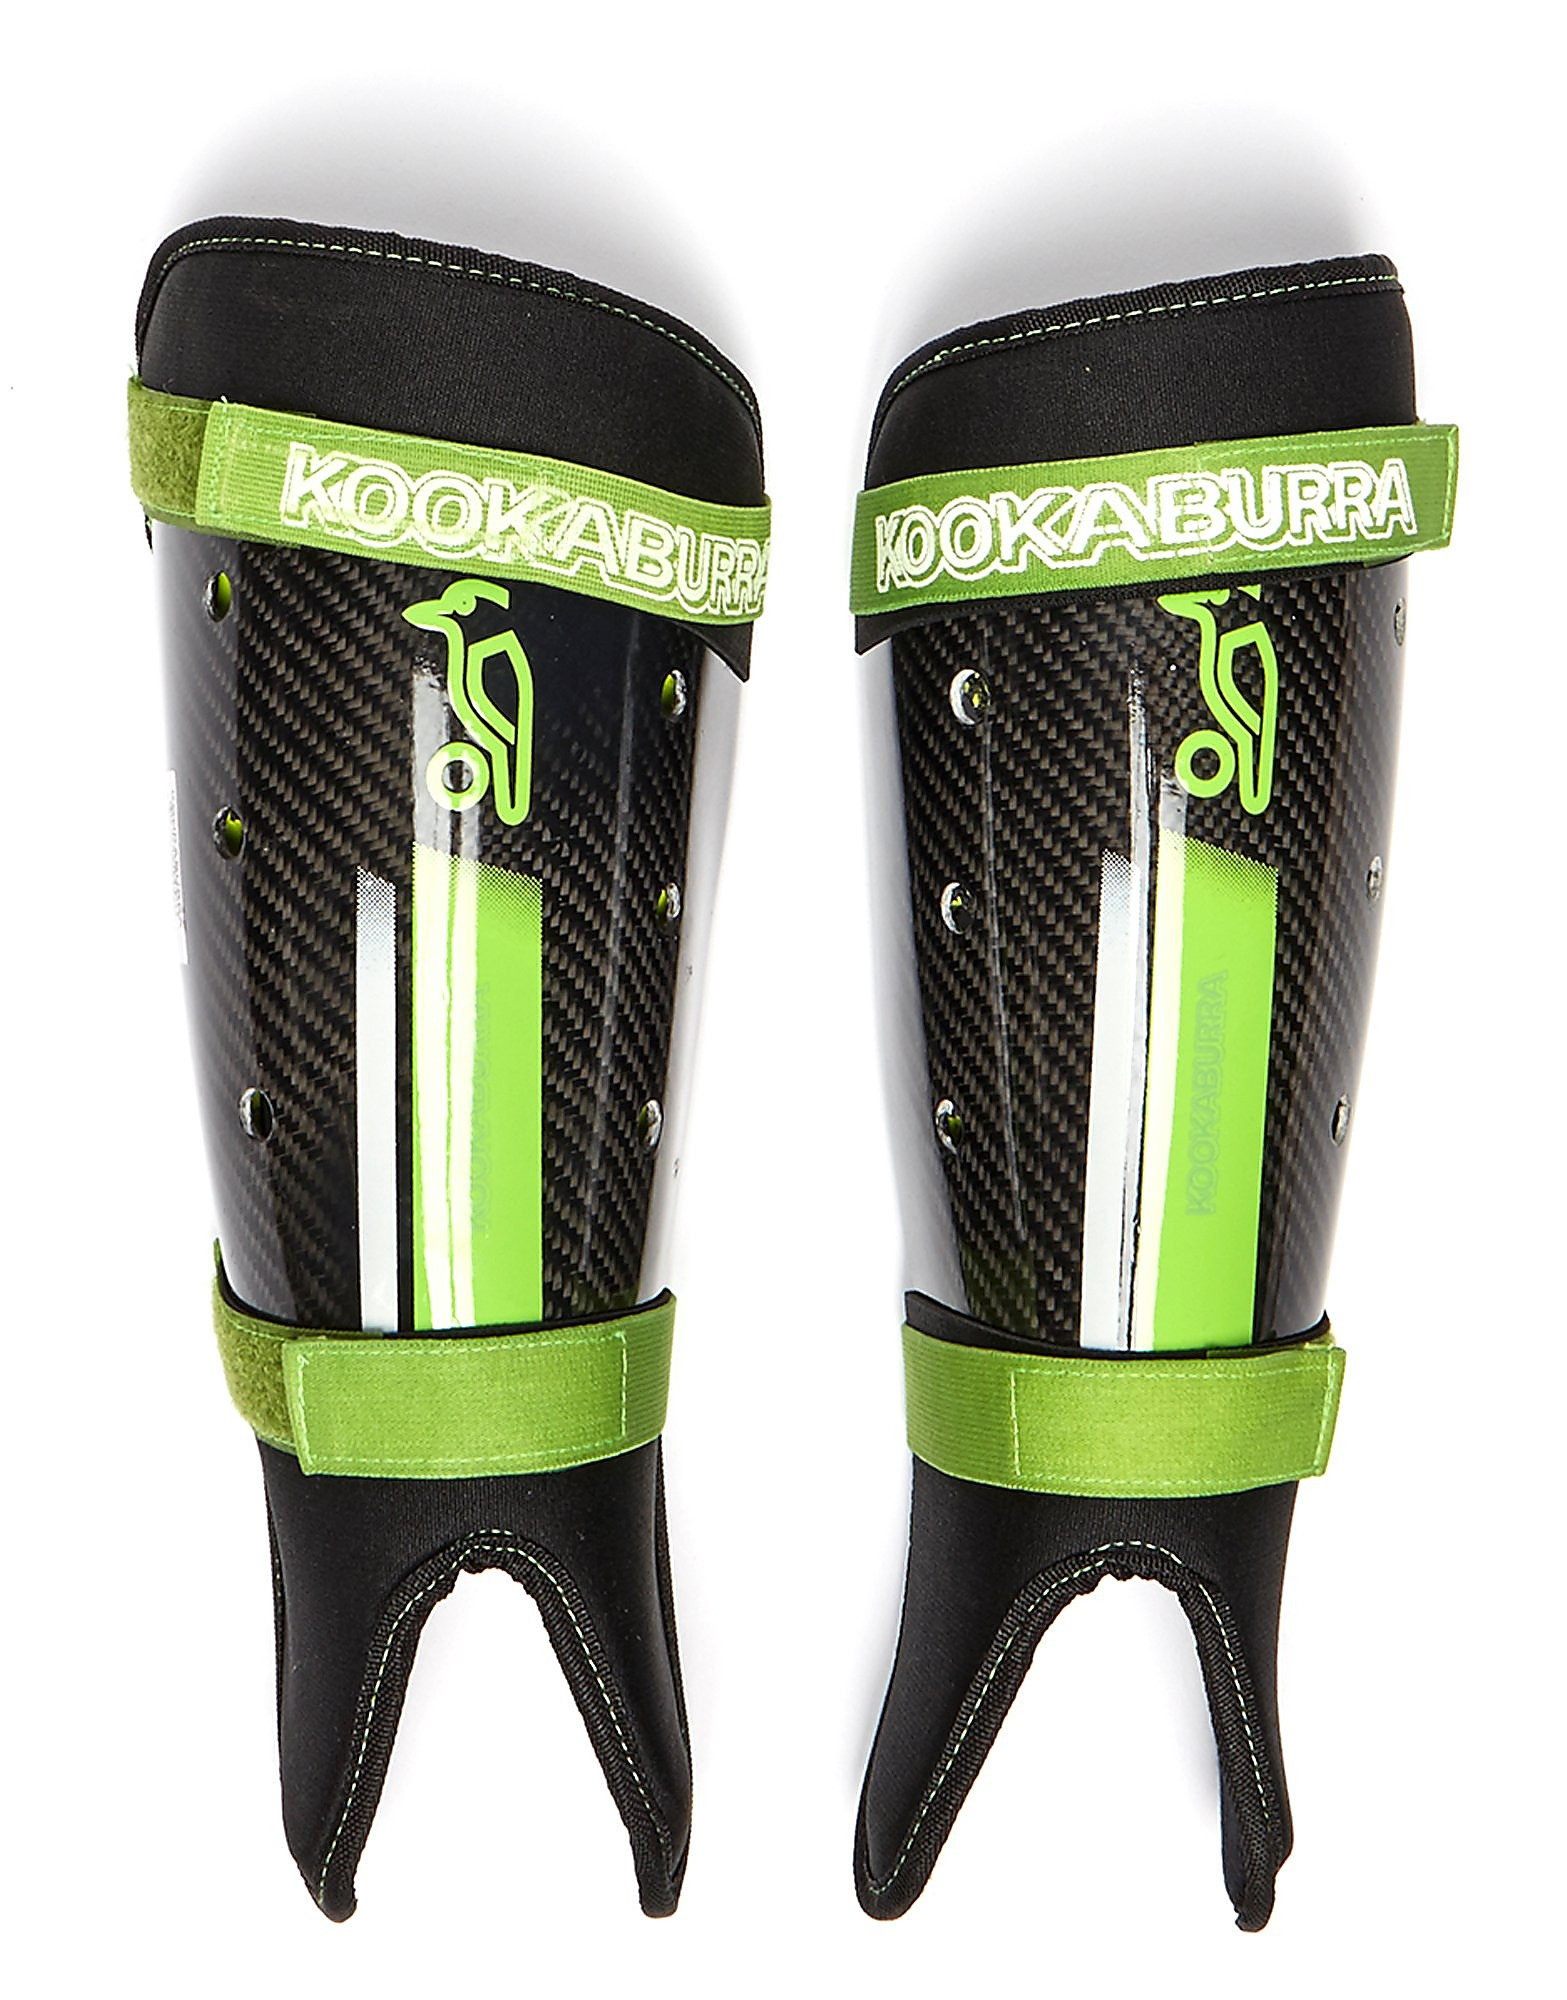 Kookaburra Team Carbon Shinguards